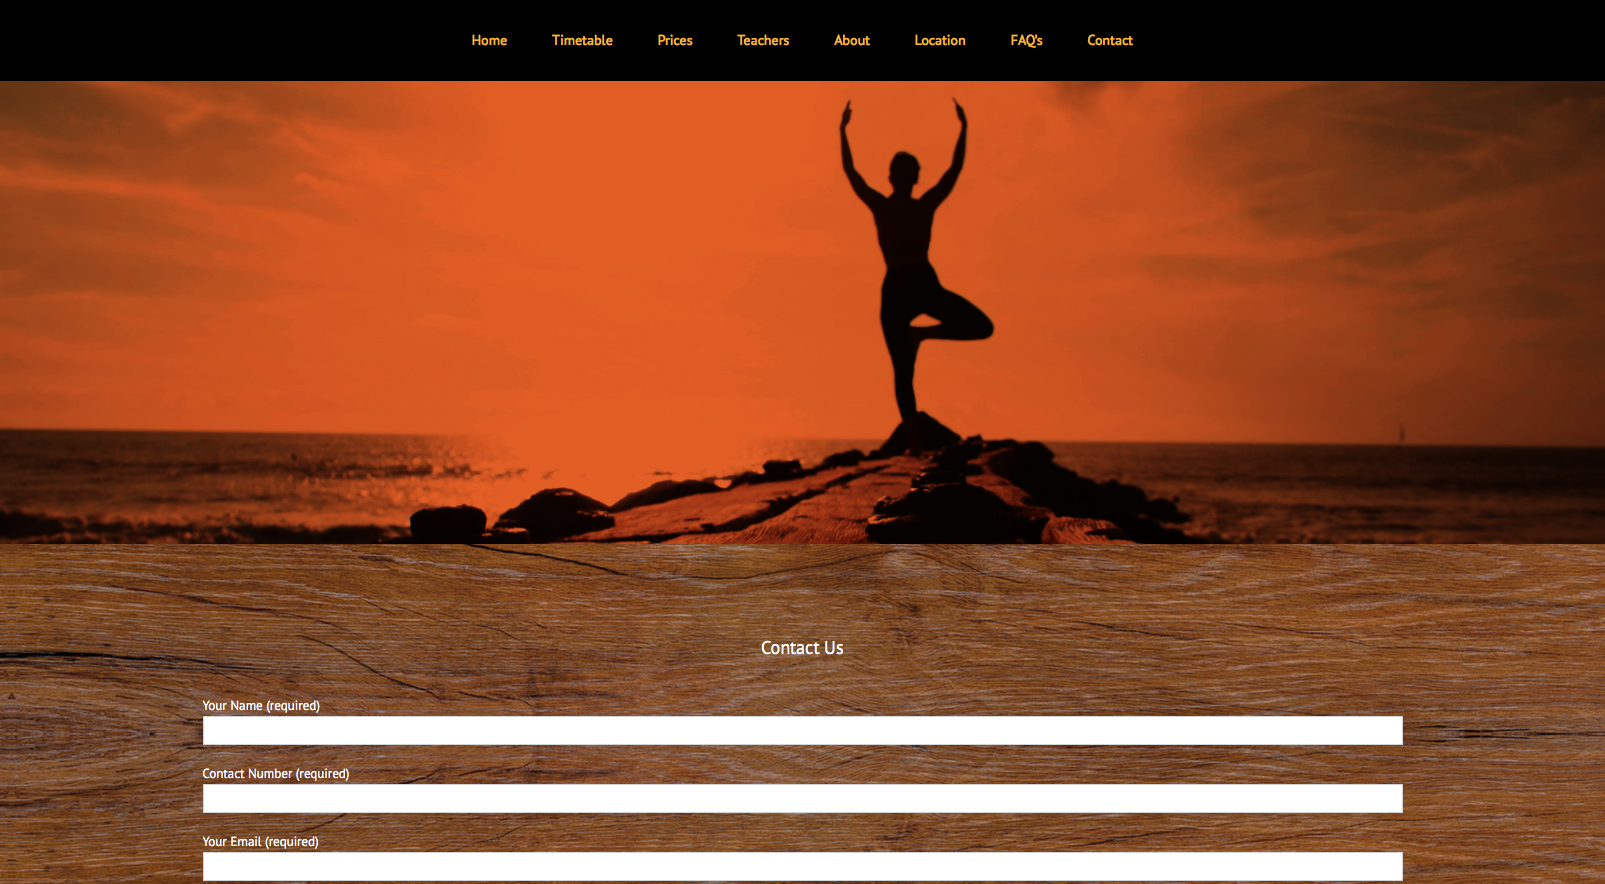 Ember Yoga website - contact form page screenshot